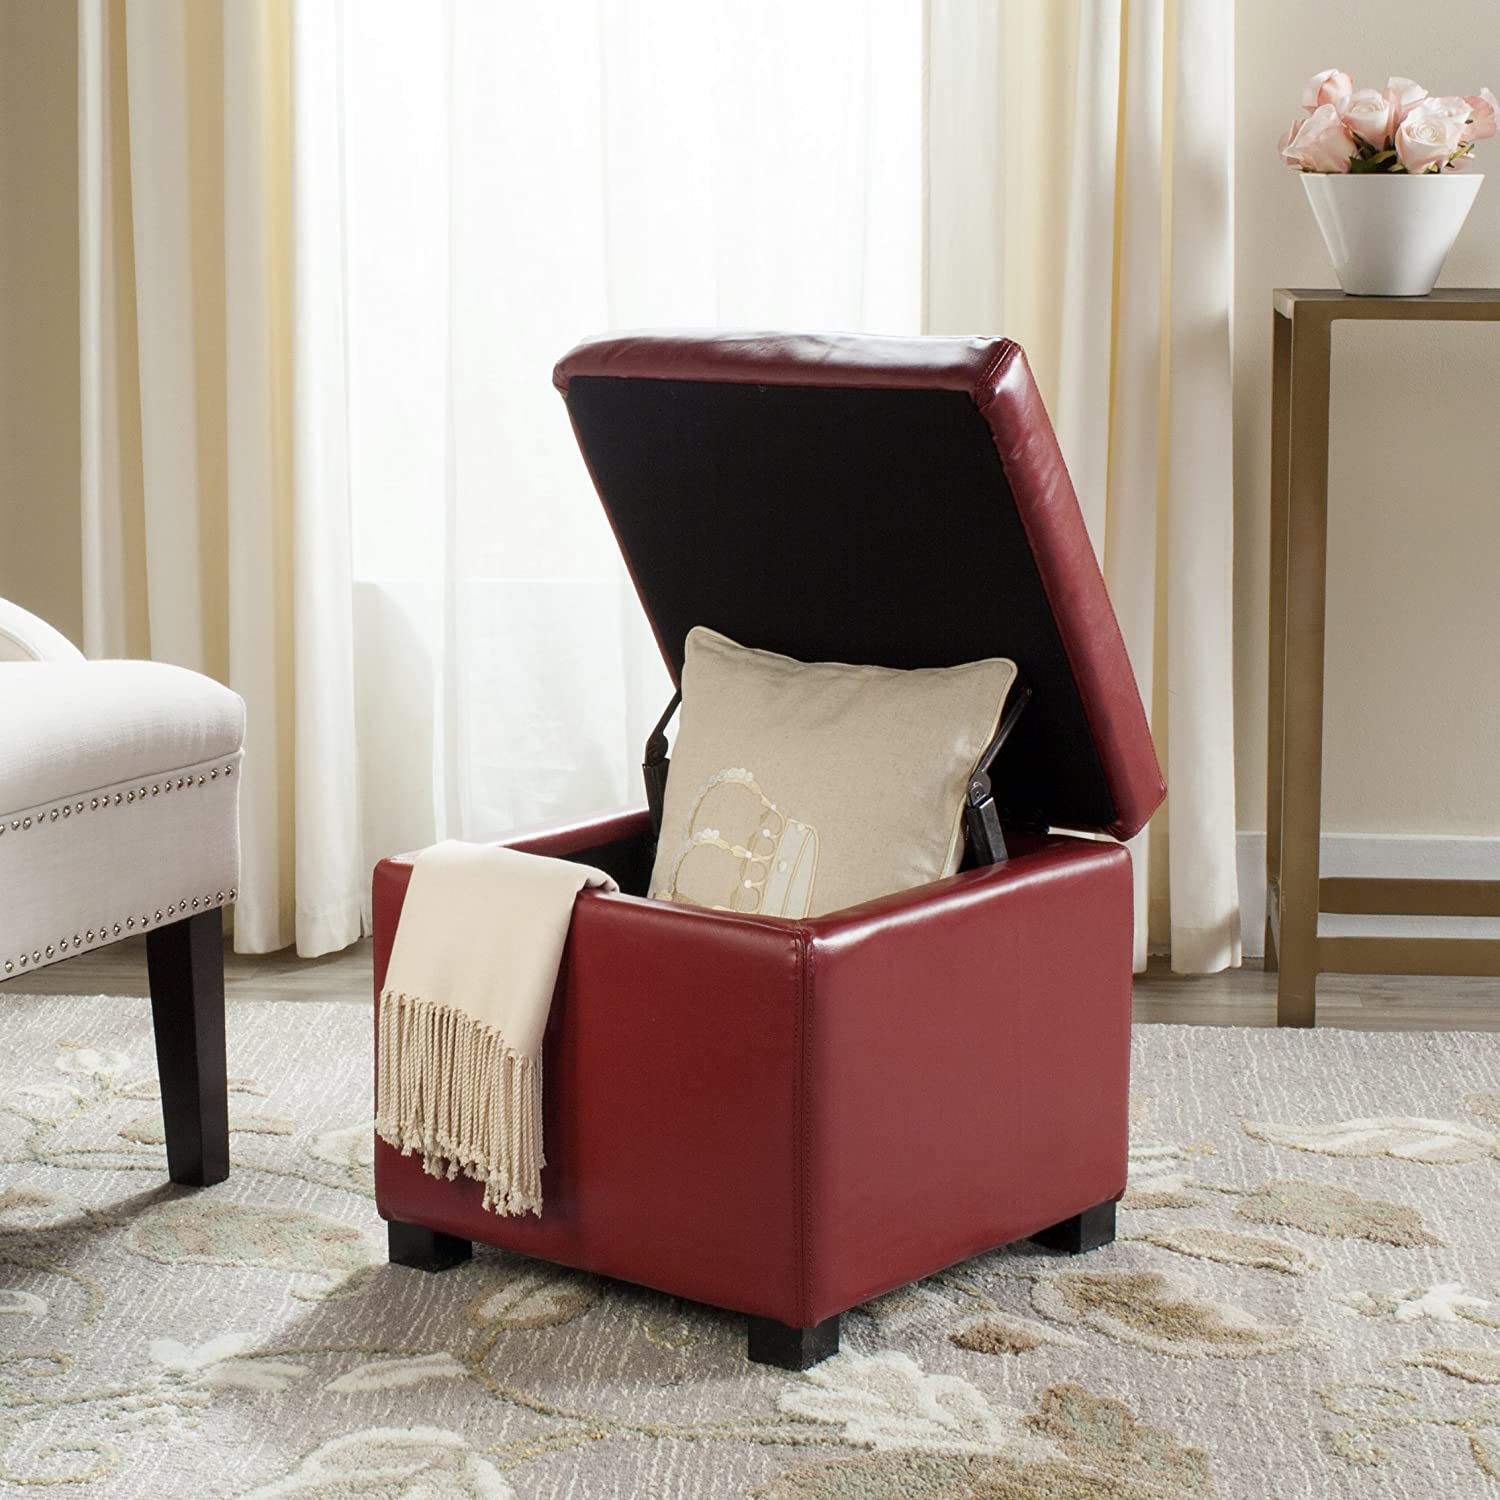 Safavieh Hudson Collection Ryder Leather Square Flip Top Ottoman, Red